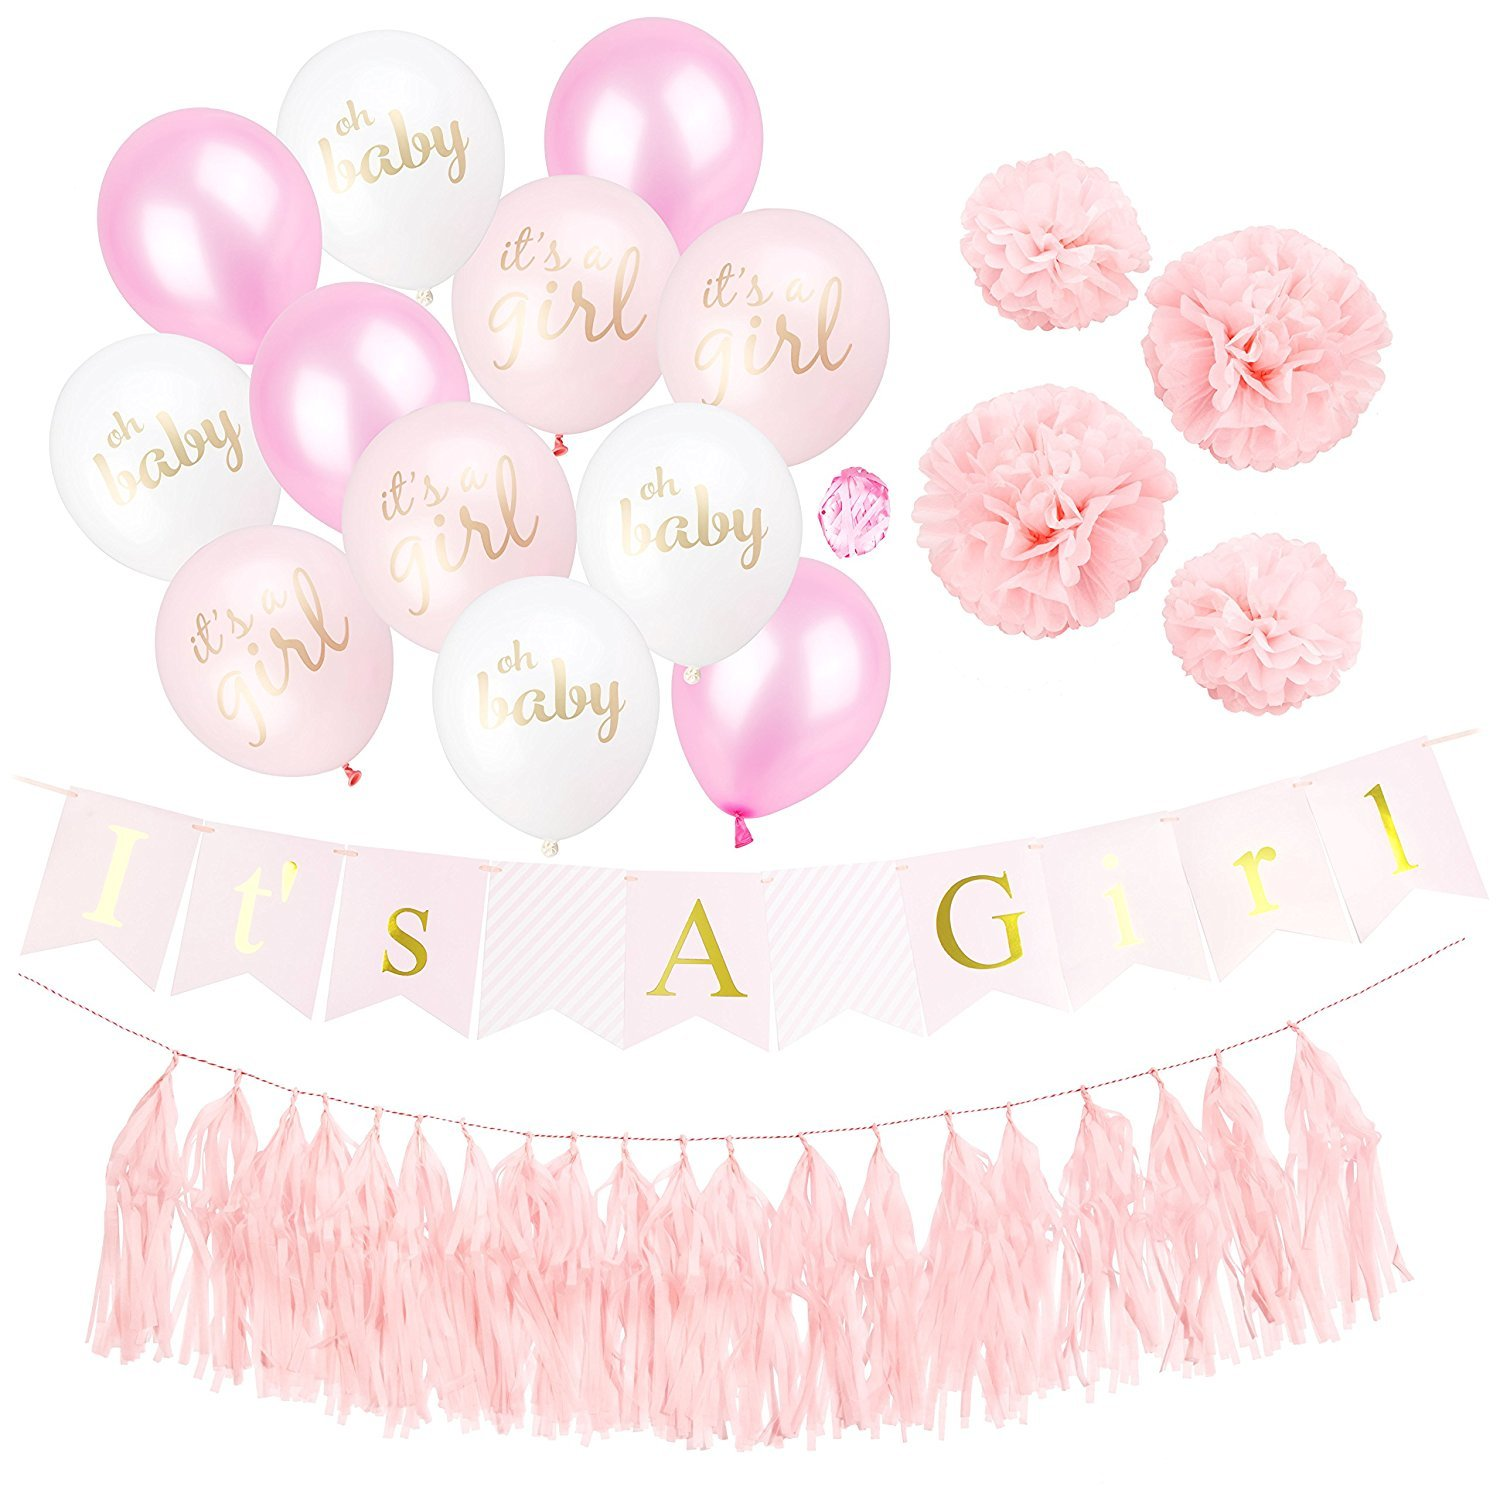 Baby Spirit It's a Girl Baby Shower Decorations | It's A Girl Banner and Mix of 12 It's A Girl, Oh Baby, Plain Balloons | 4 Tissue Paper Pom Poms and Tassels | Pink and Gold Decor Party Supplies